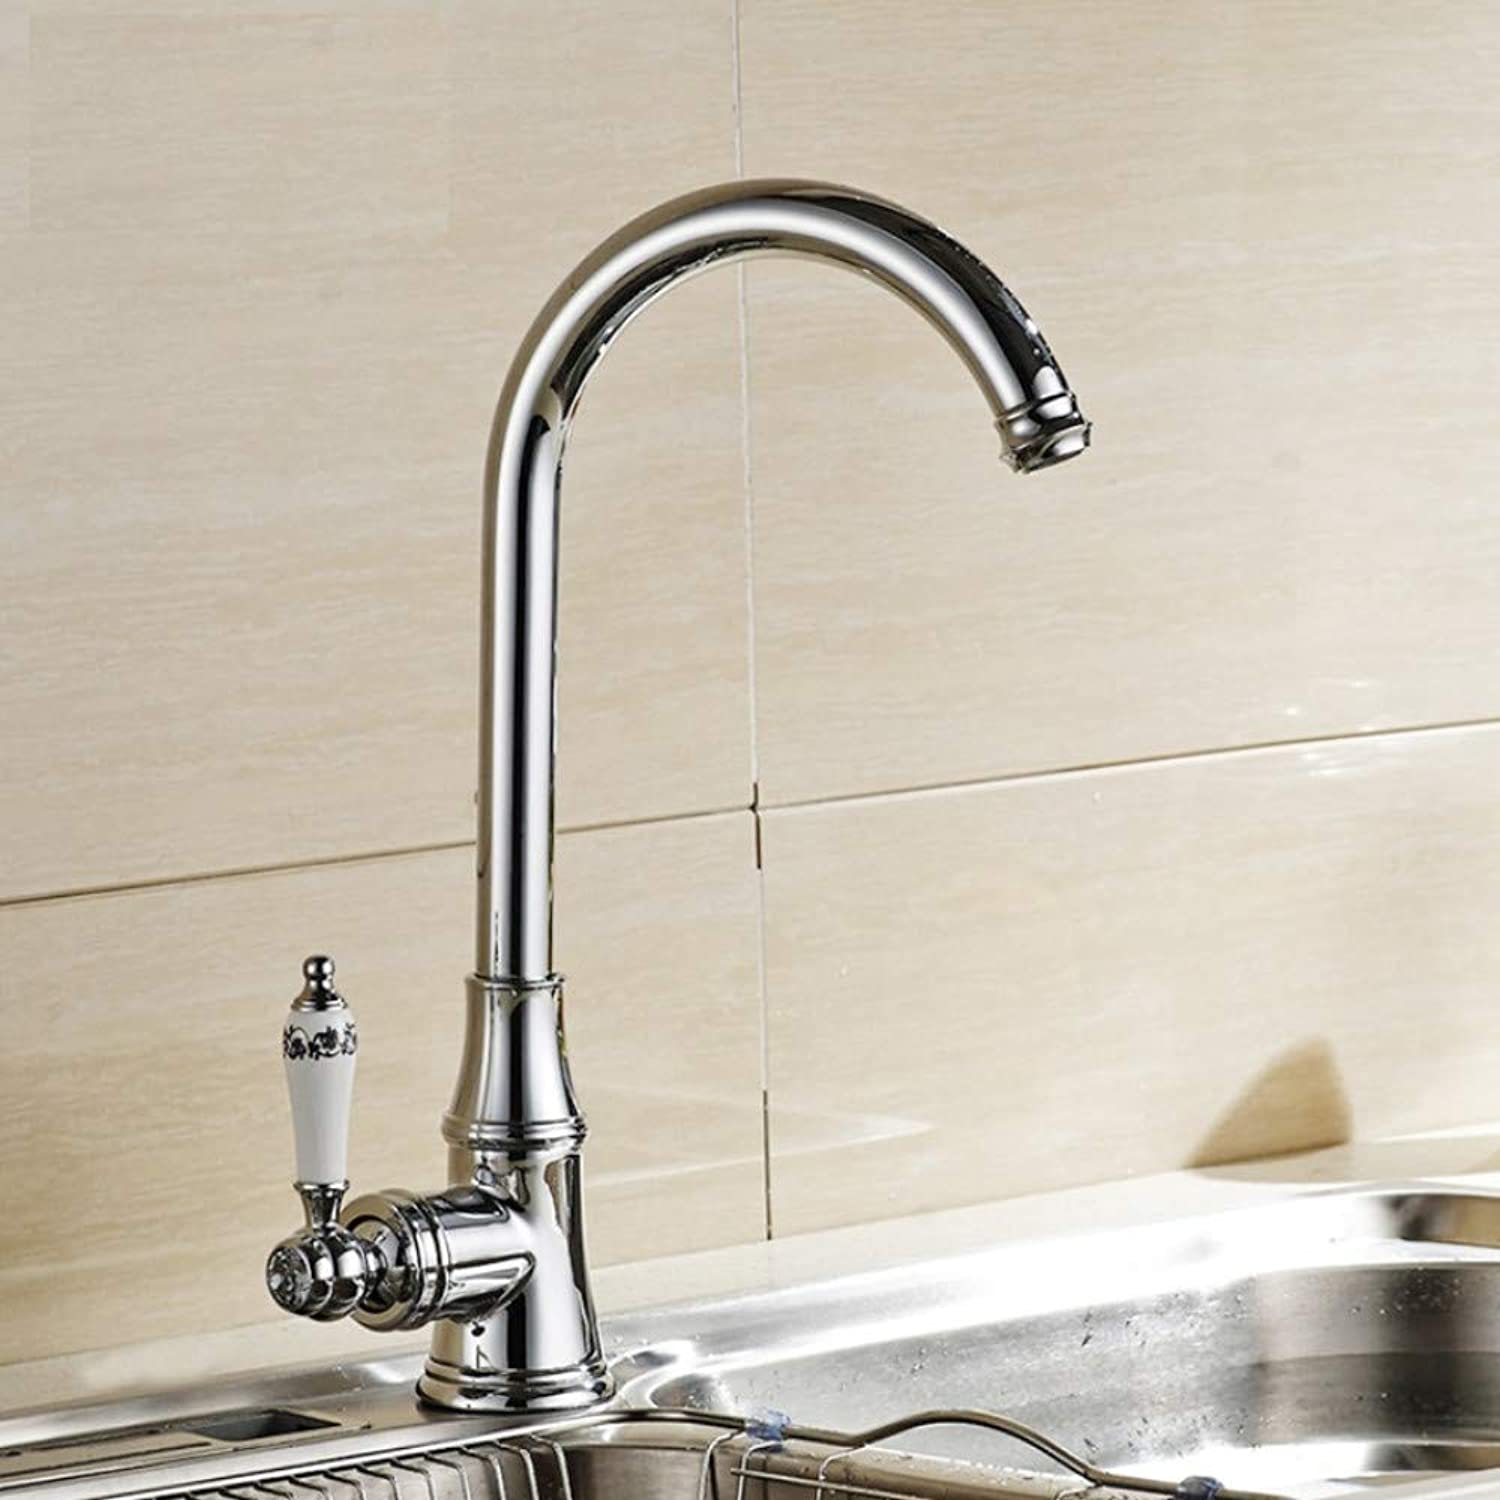 Ganjue Polished Chrome Kitchen Faucet. 360 Degree redating Kitchen Tap. Hot and Cold Faucet Basin Sink Mixer